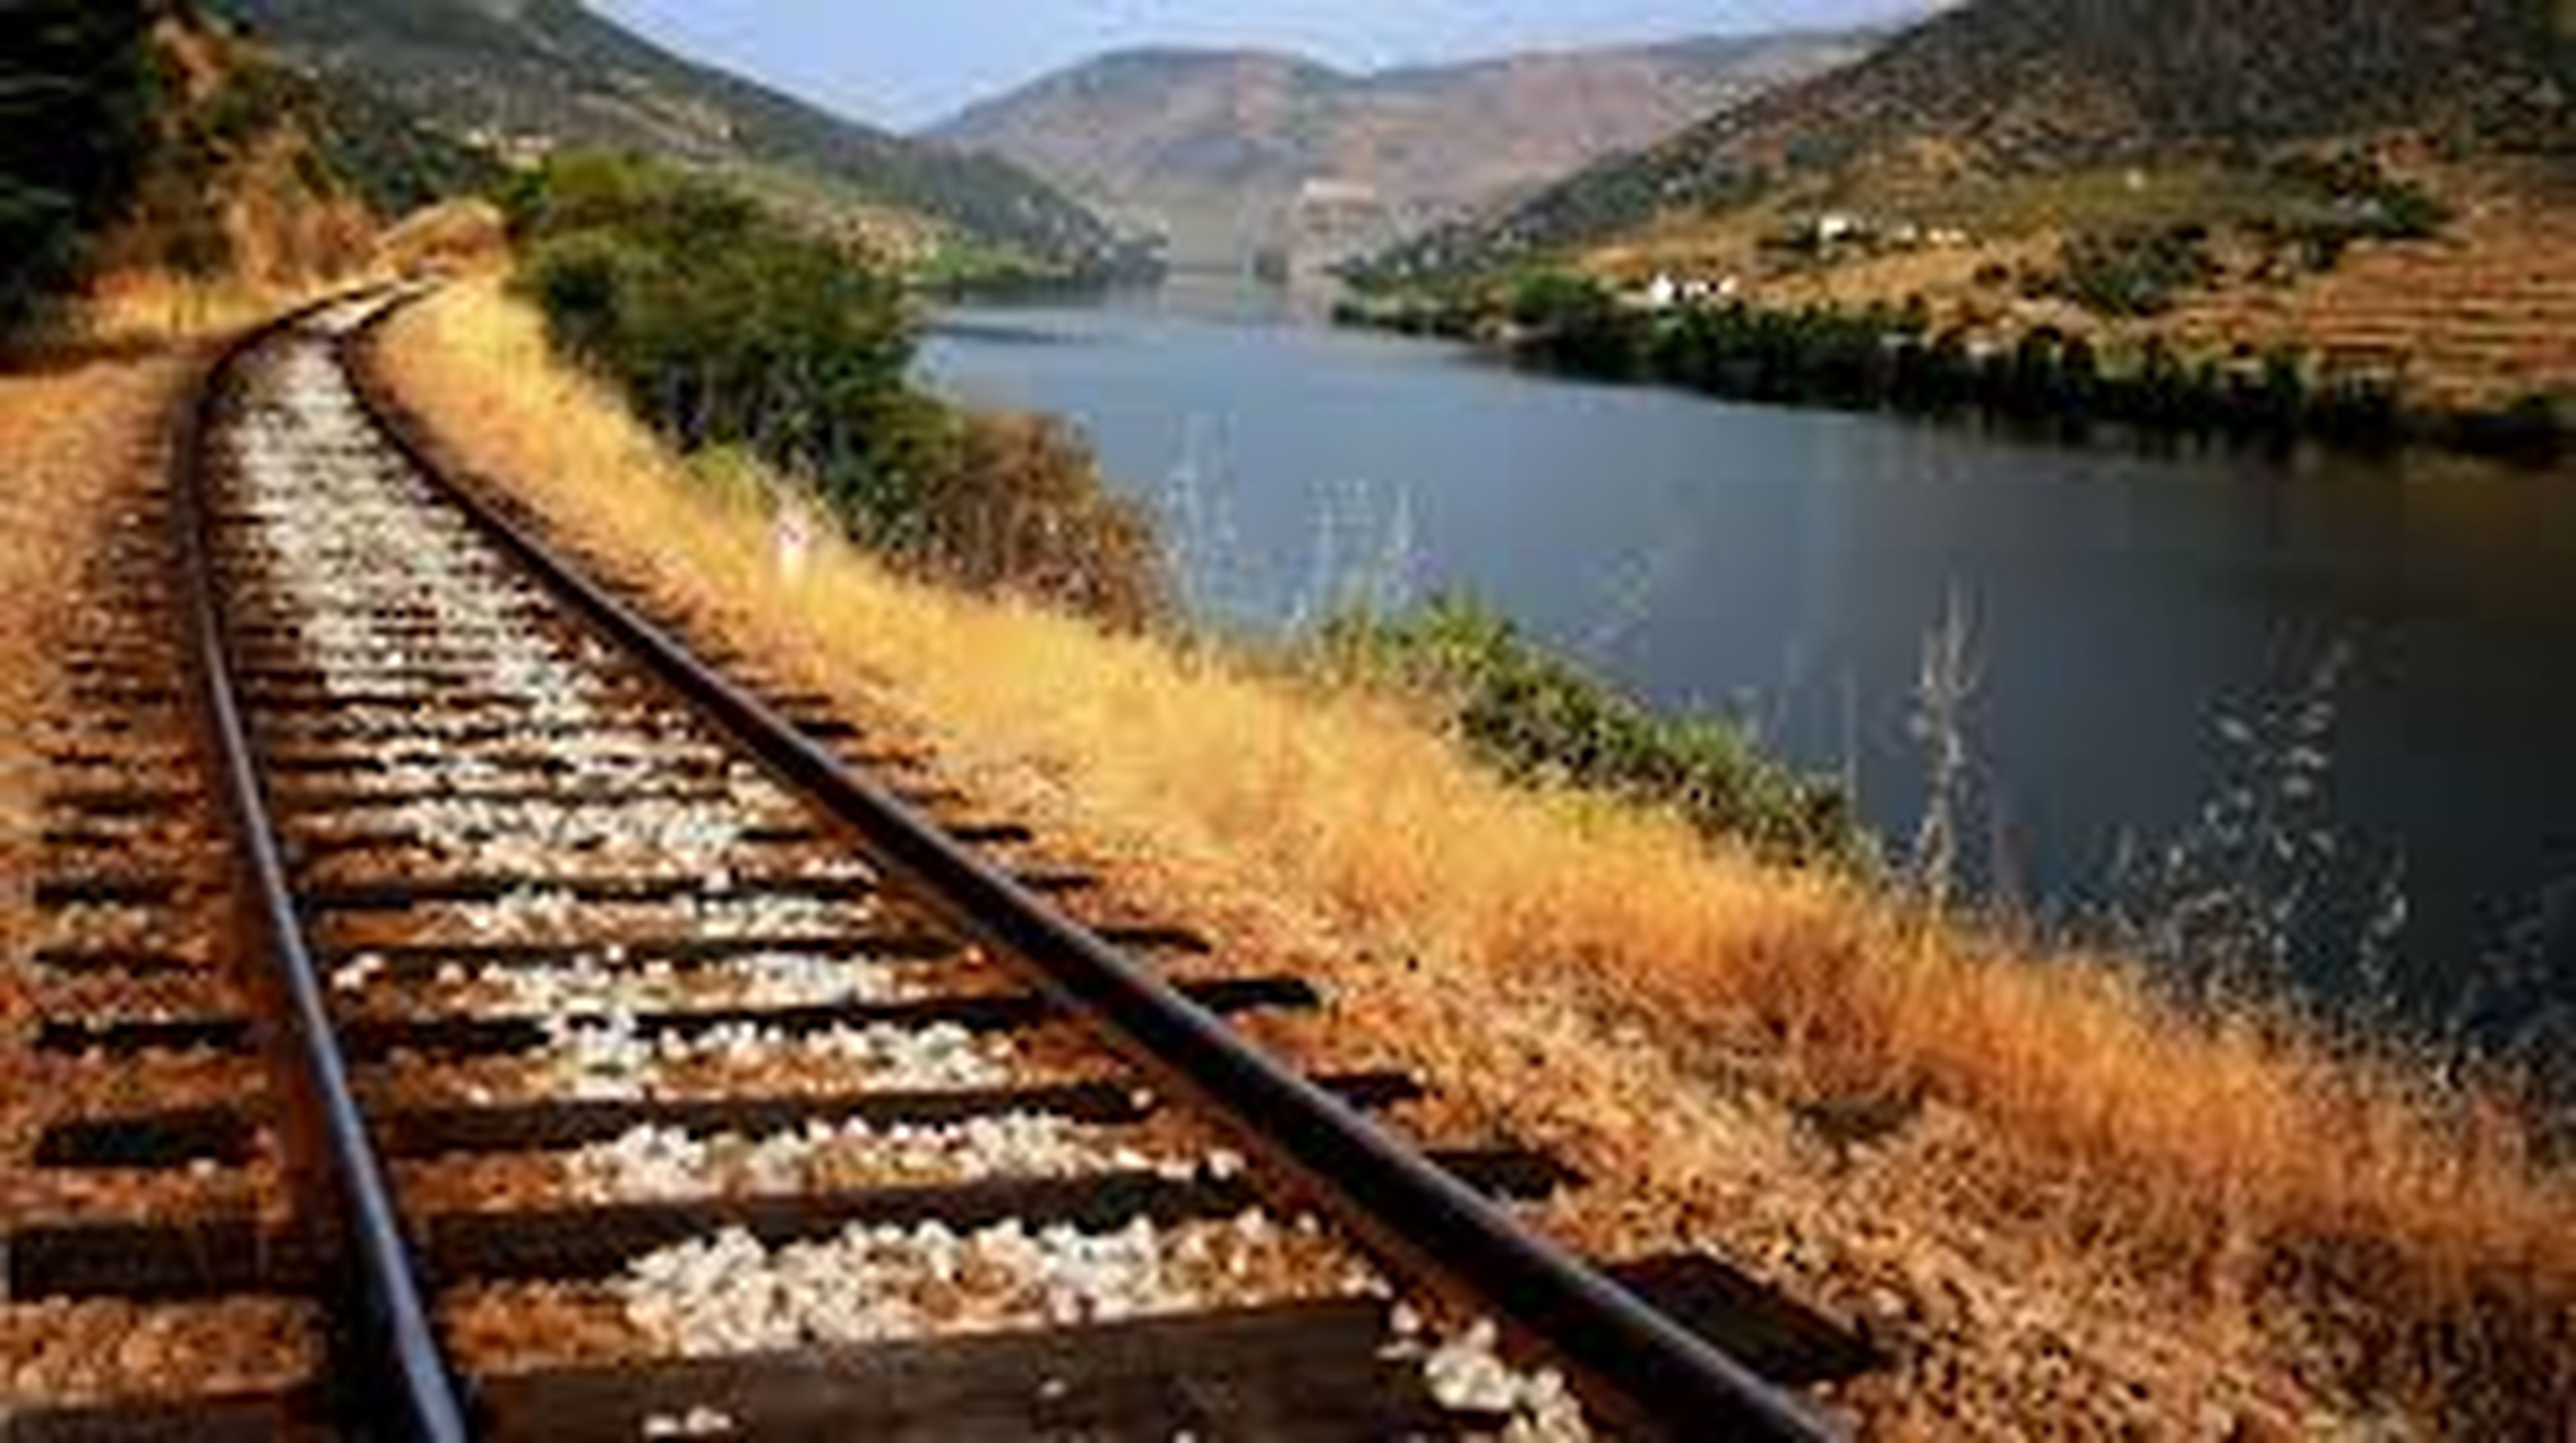 railroad track, rail transportation, transportation, mountain, water, railway track, public transportation, high angle view, railing, connection, nature, tranquility, river, tranquil scene, landscape, train - vehicle, mountain range, train, day, no people